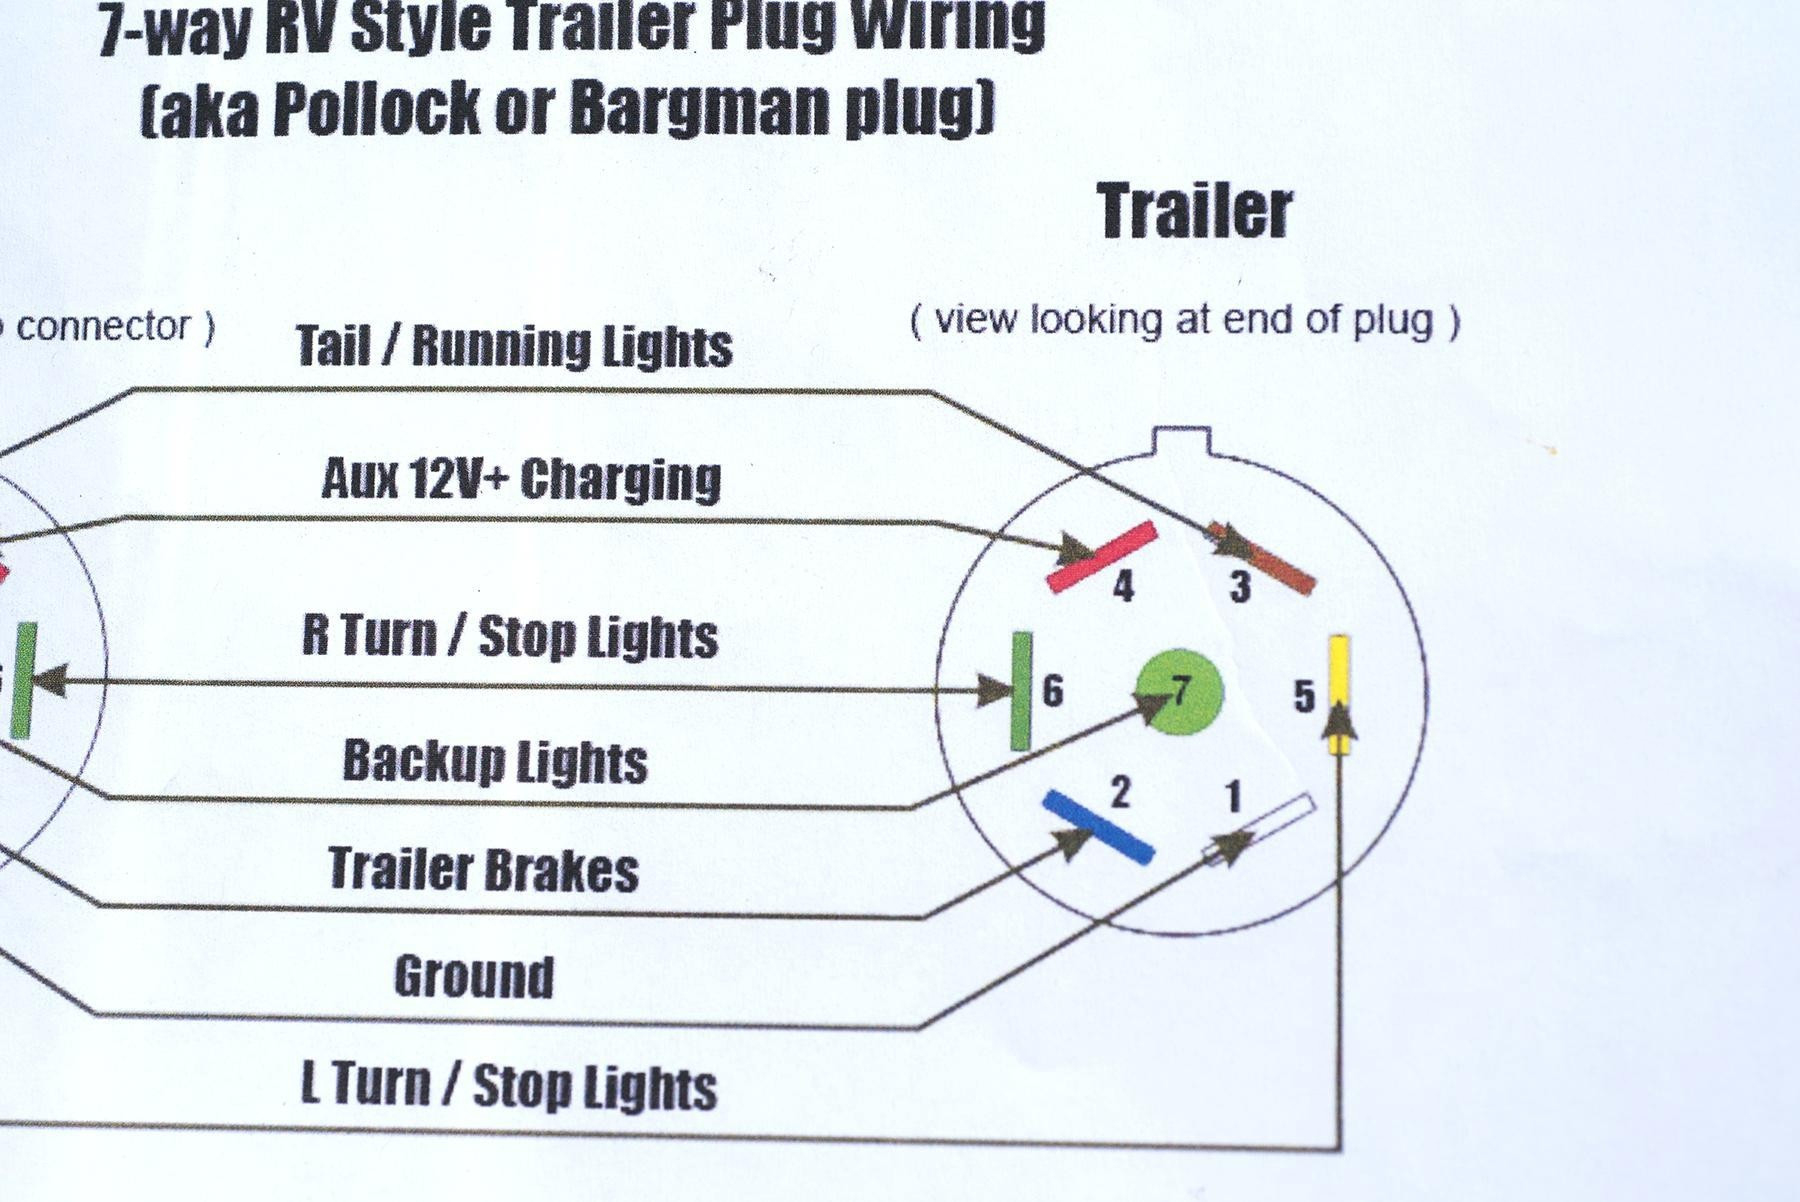 Dodge Ram 7 Pin Wiring Diagram - Wiring Diagrams Thumbs - Trailer Wiring Diagram Dodge Ram